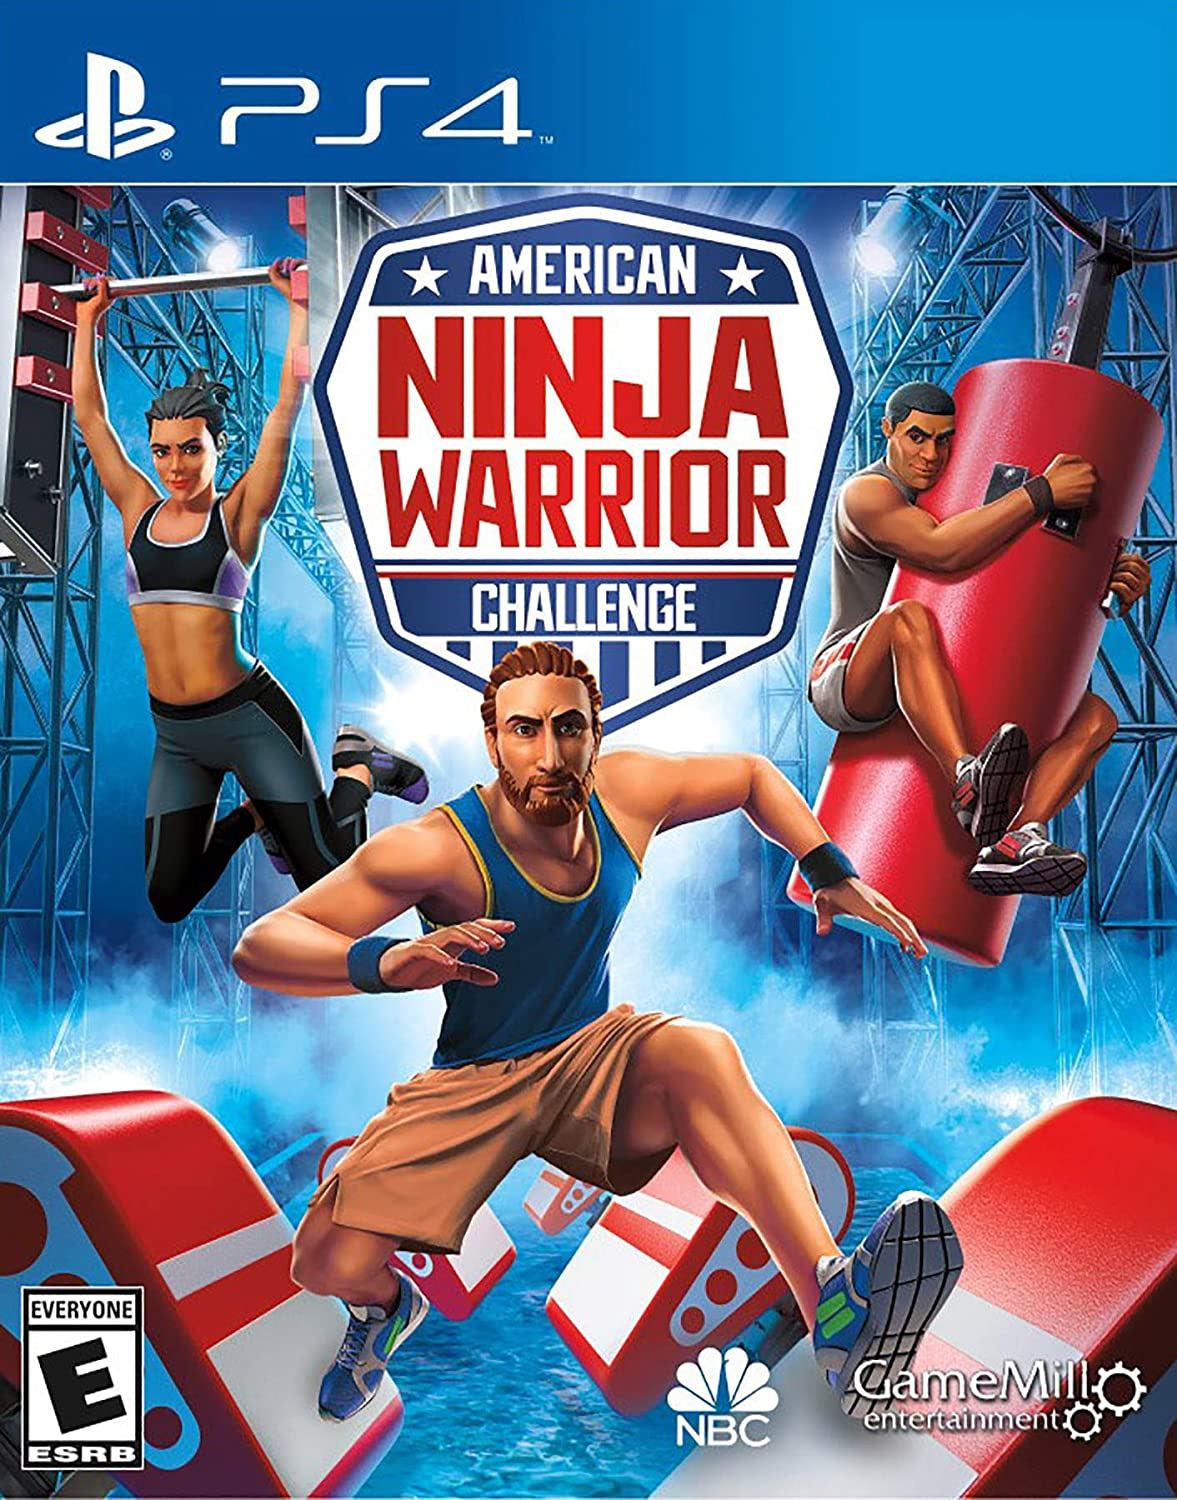 Amazon.com: American Ninja Warrior - Xbox One: Game Mill Entertainment: Video Games